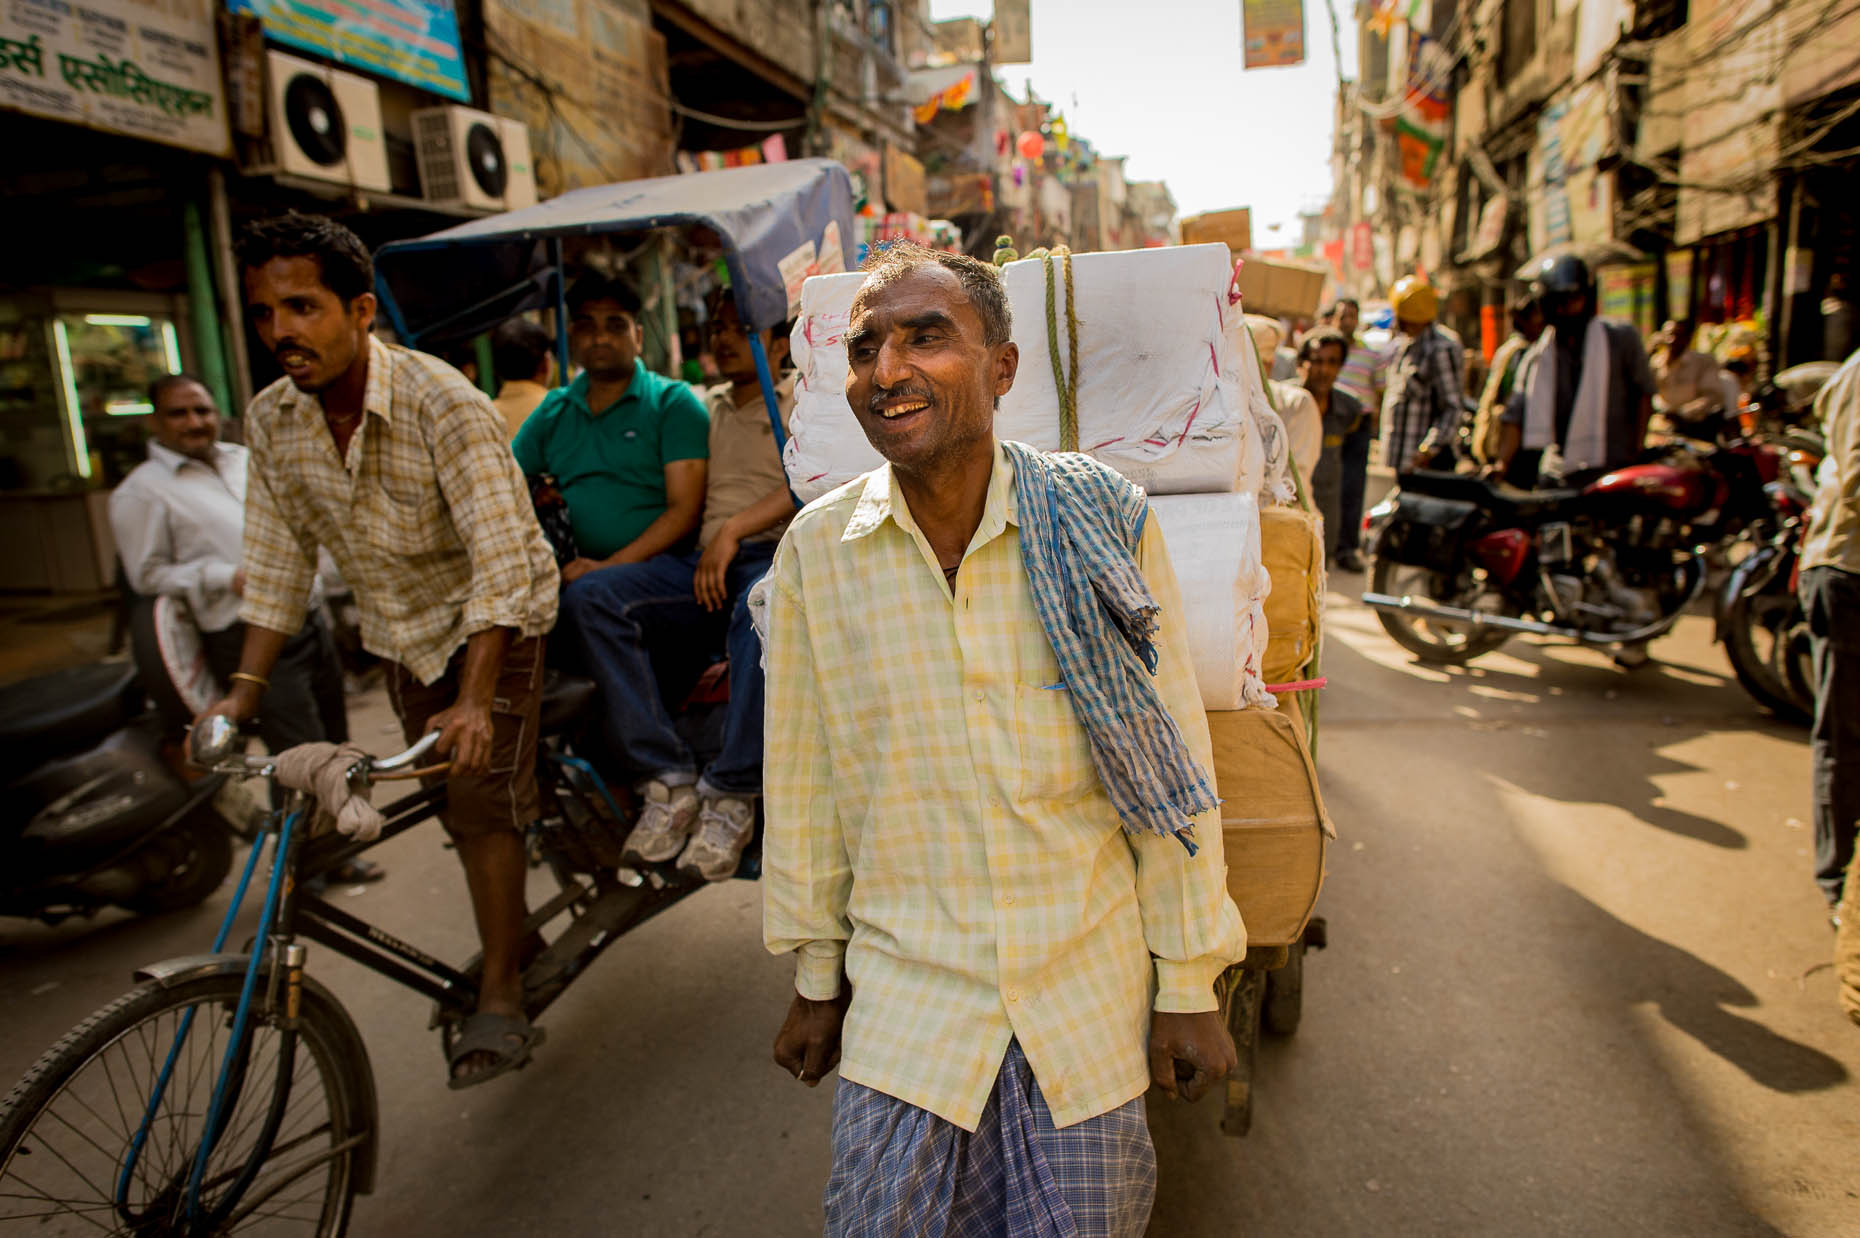 Dayworker-in-India-carrying-heavy-load